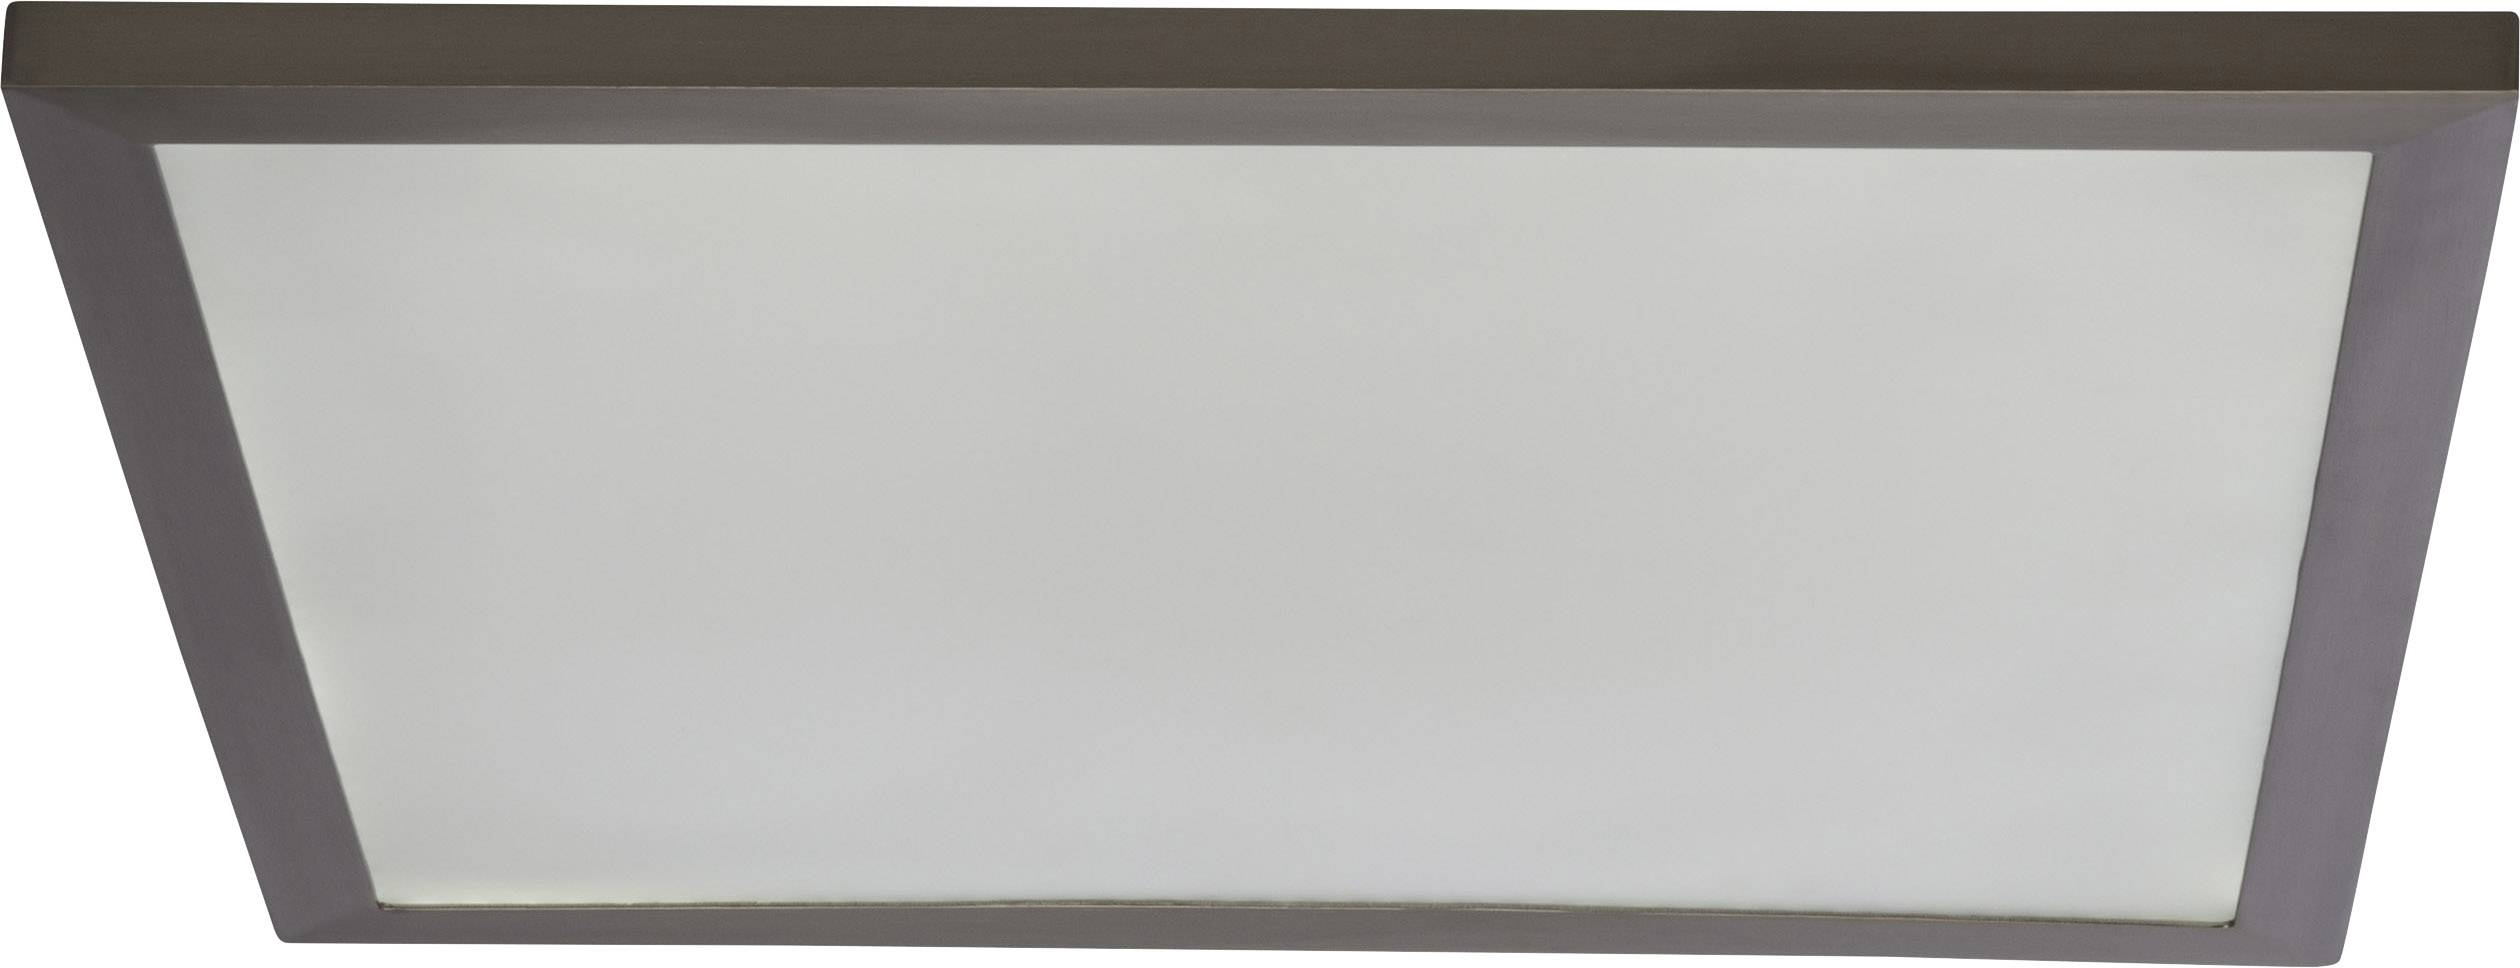 Led Panel Tageslicht Brilliant Led Panel 42w Warm Weiß Neutral Weiß